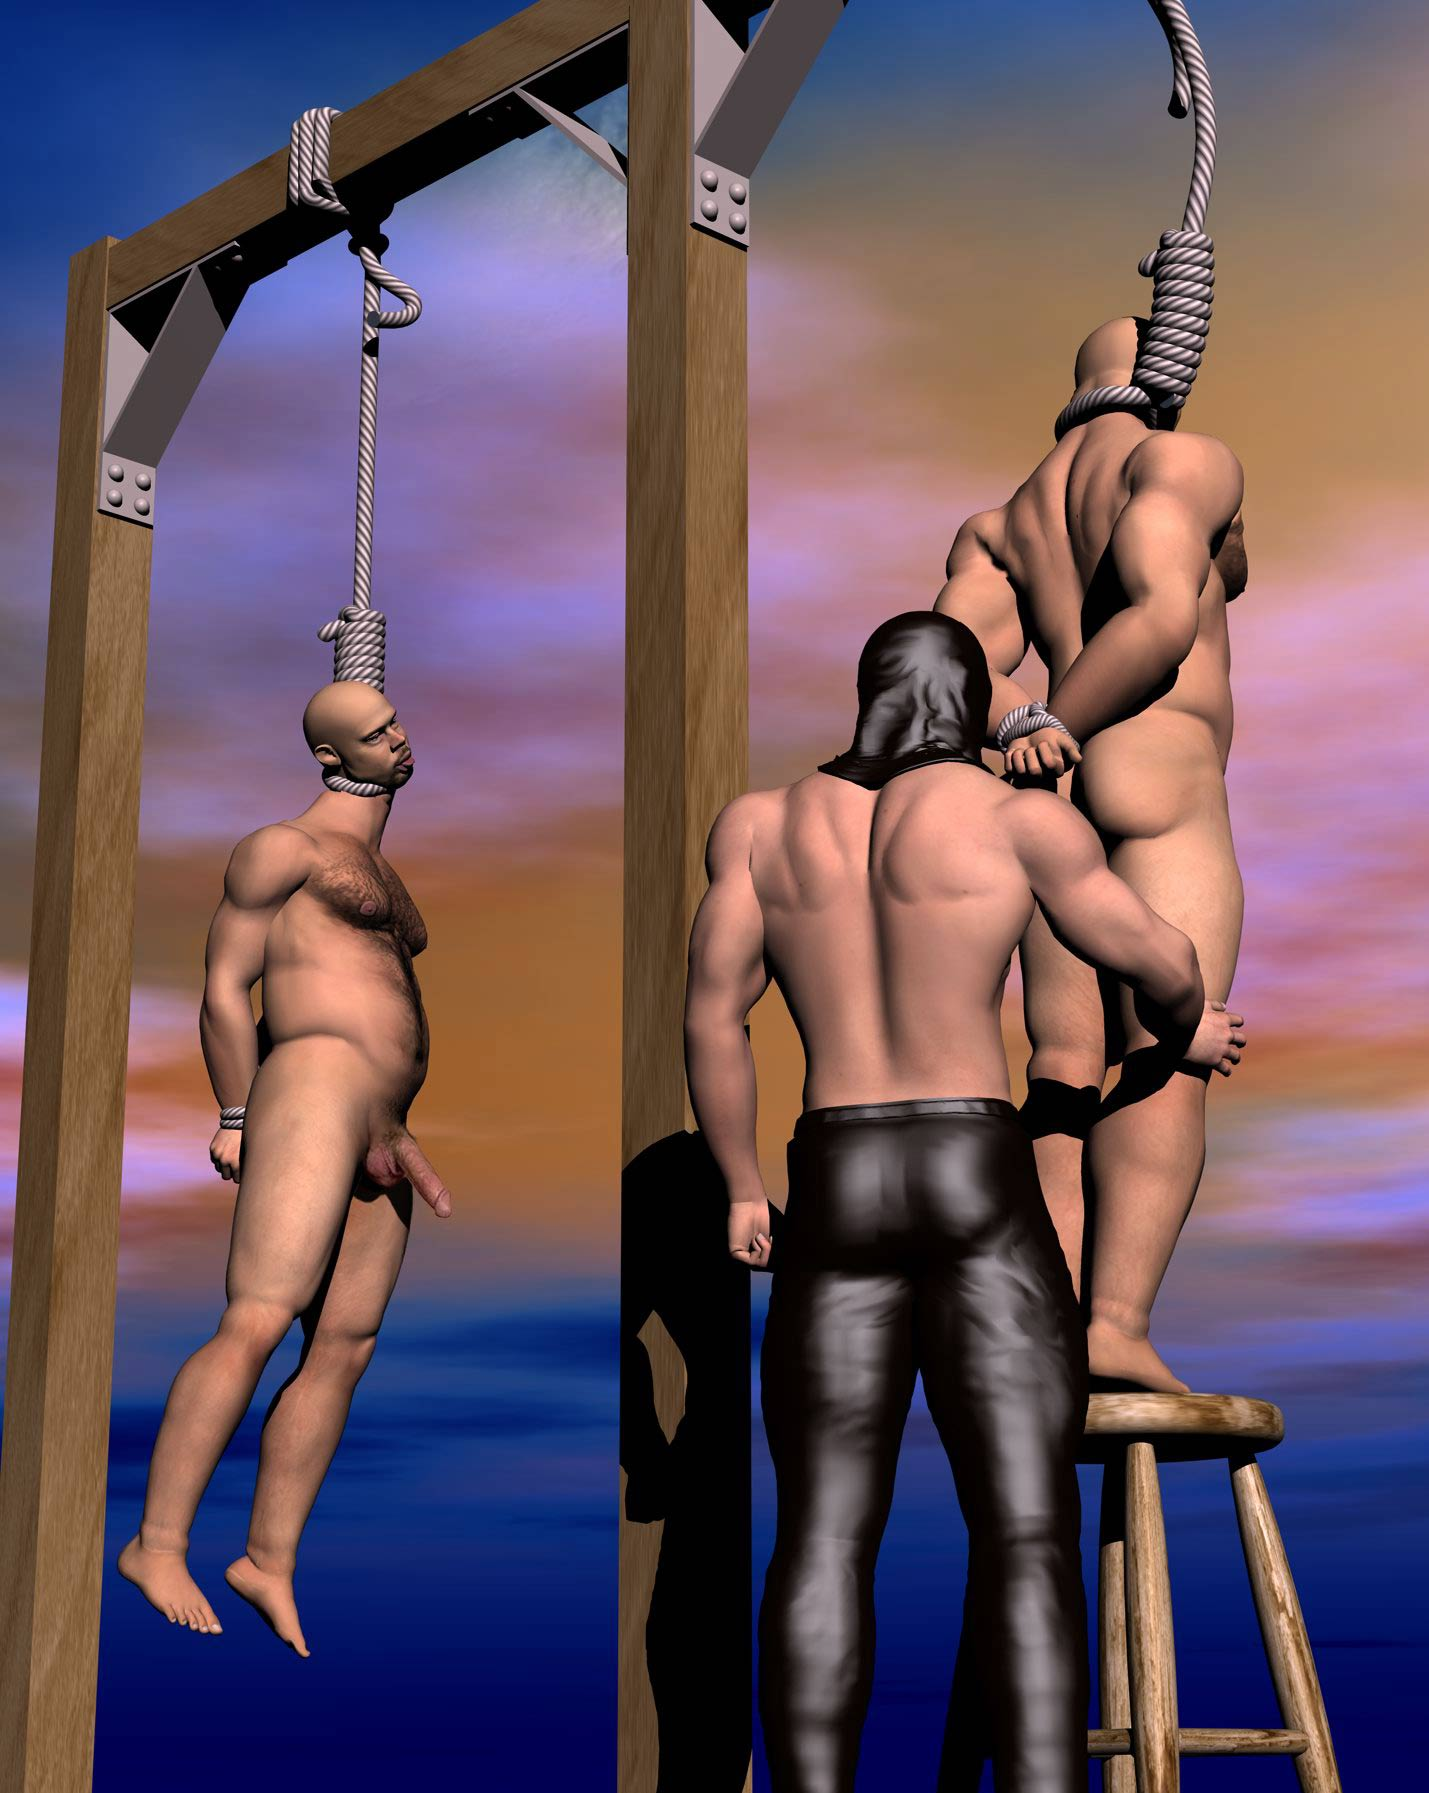 Bdsm hangings blue